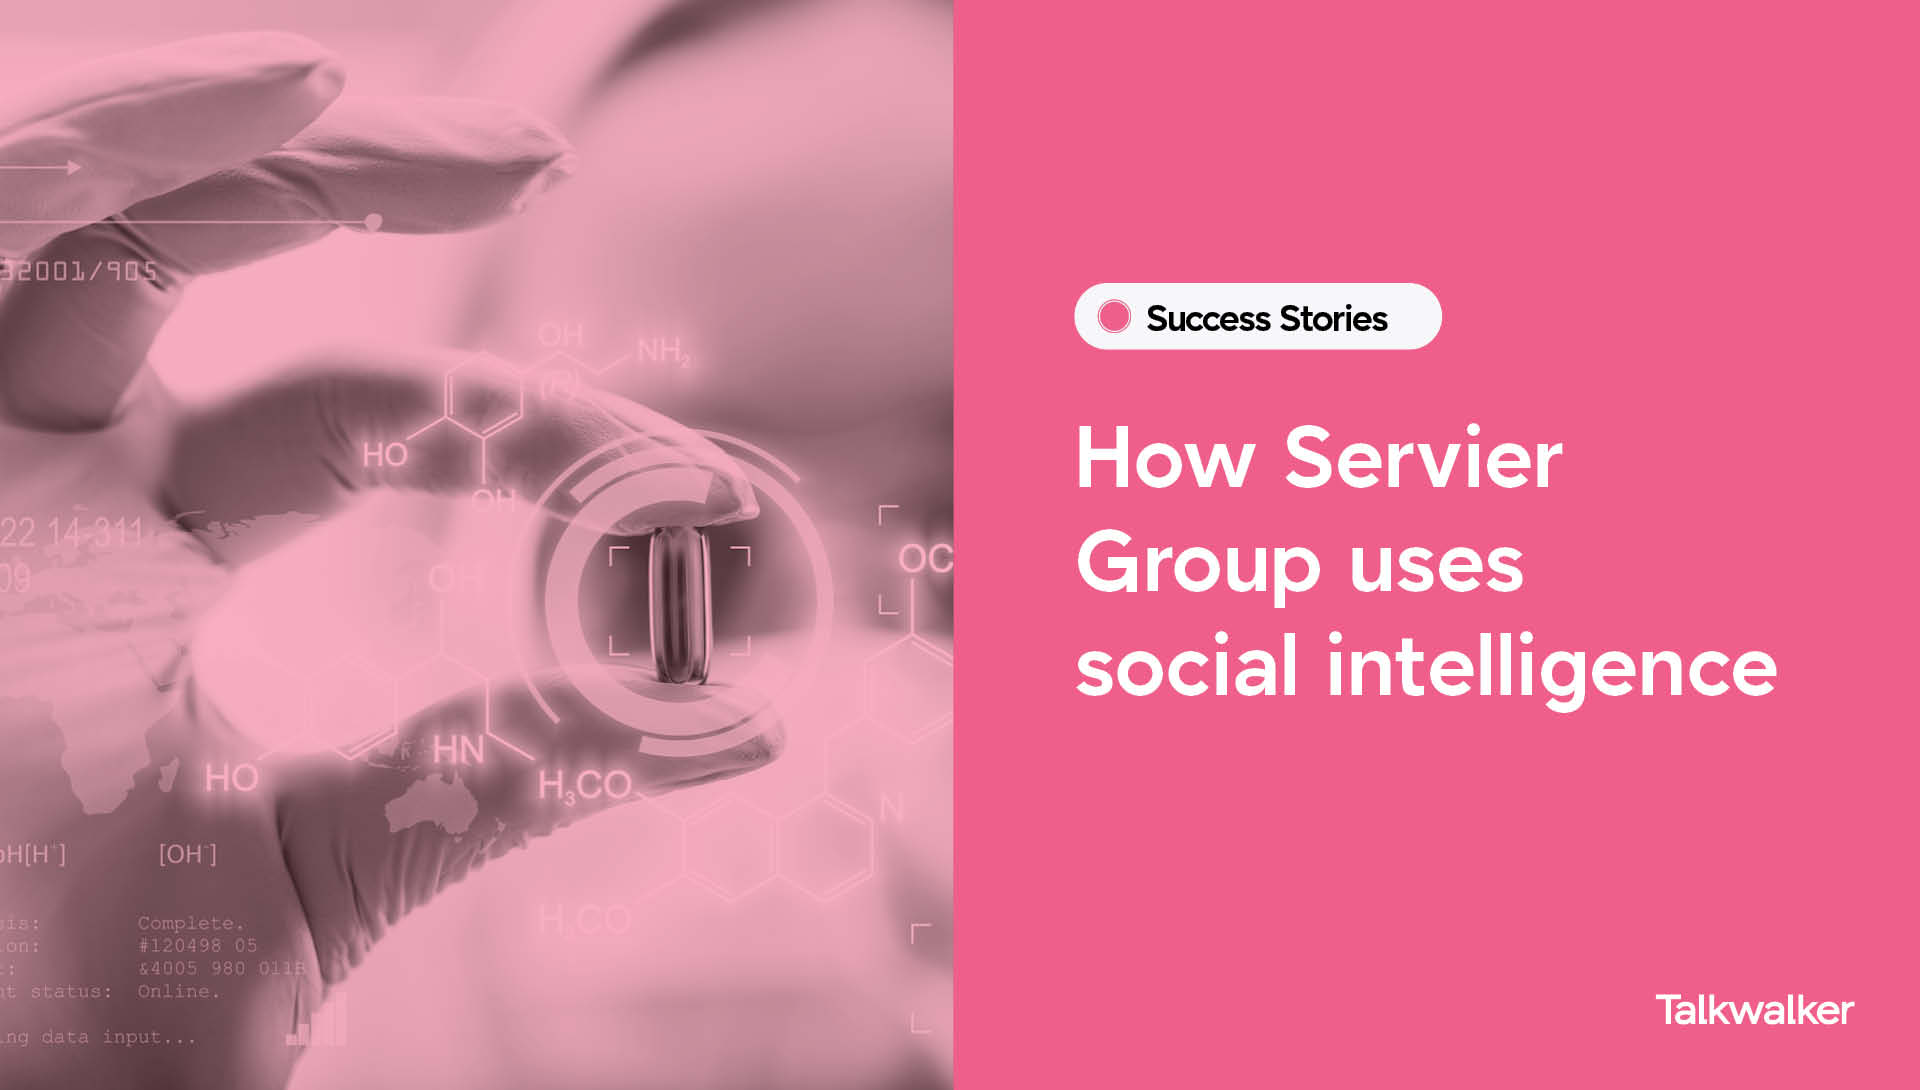 How Servier Group uses social intelligence